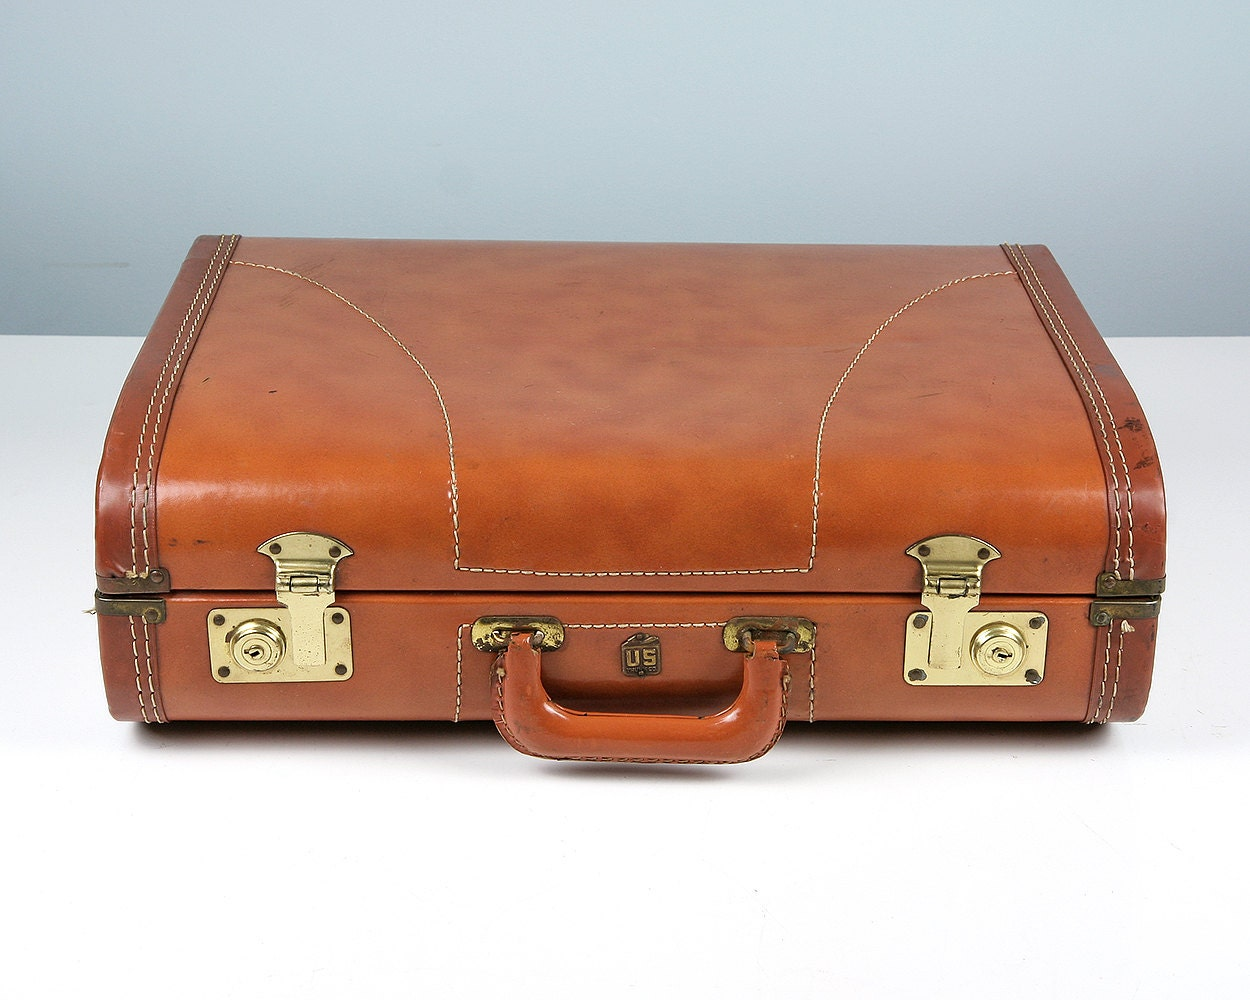 Vintage suitcase brown suitcase us trunk co suitcase1950s - Vintage suitcase ...